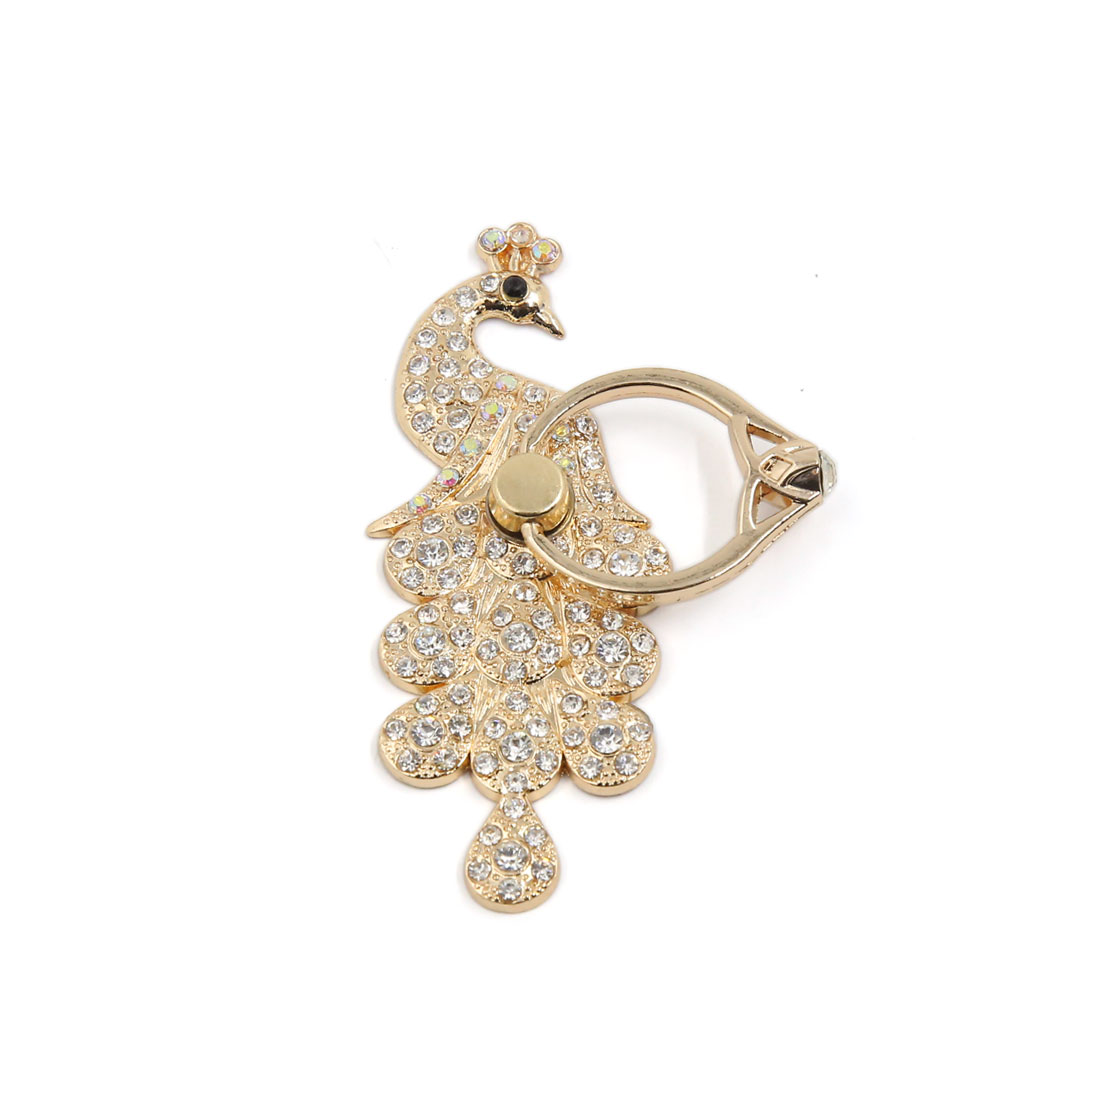 Gold Tone Faux Diamond Decor Peacock Shaped Cell Phone Finger Ring Holder